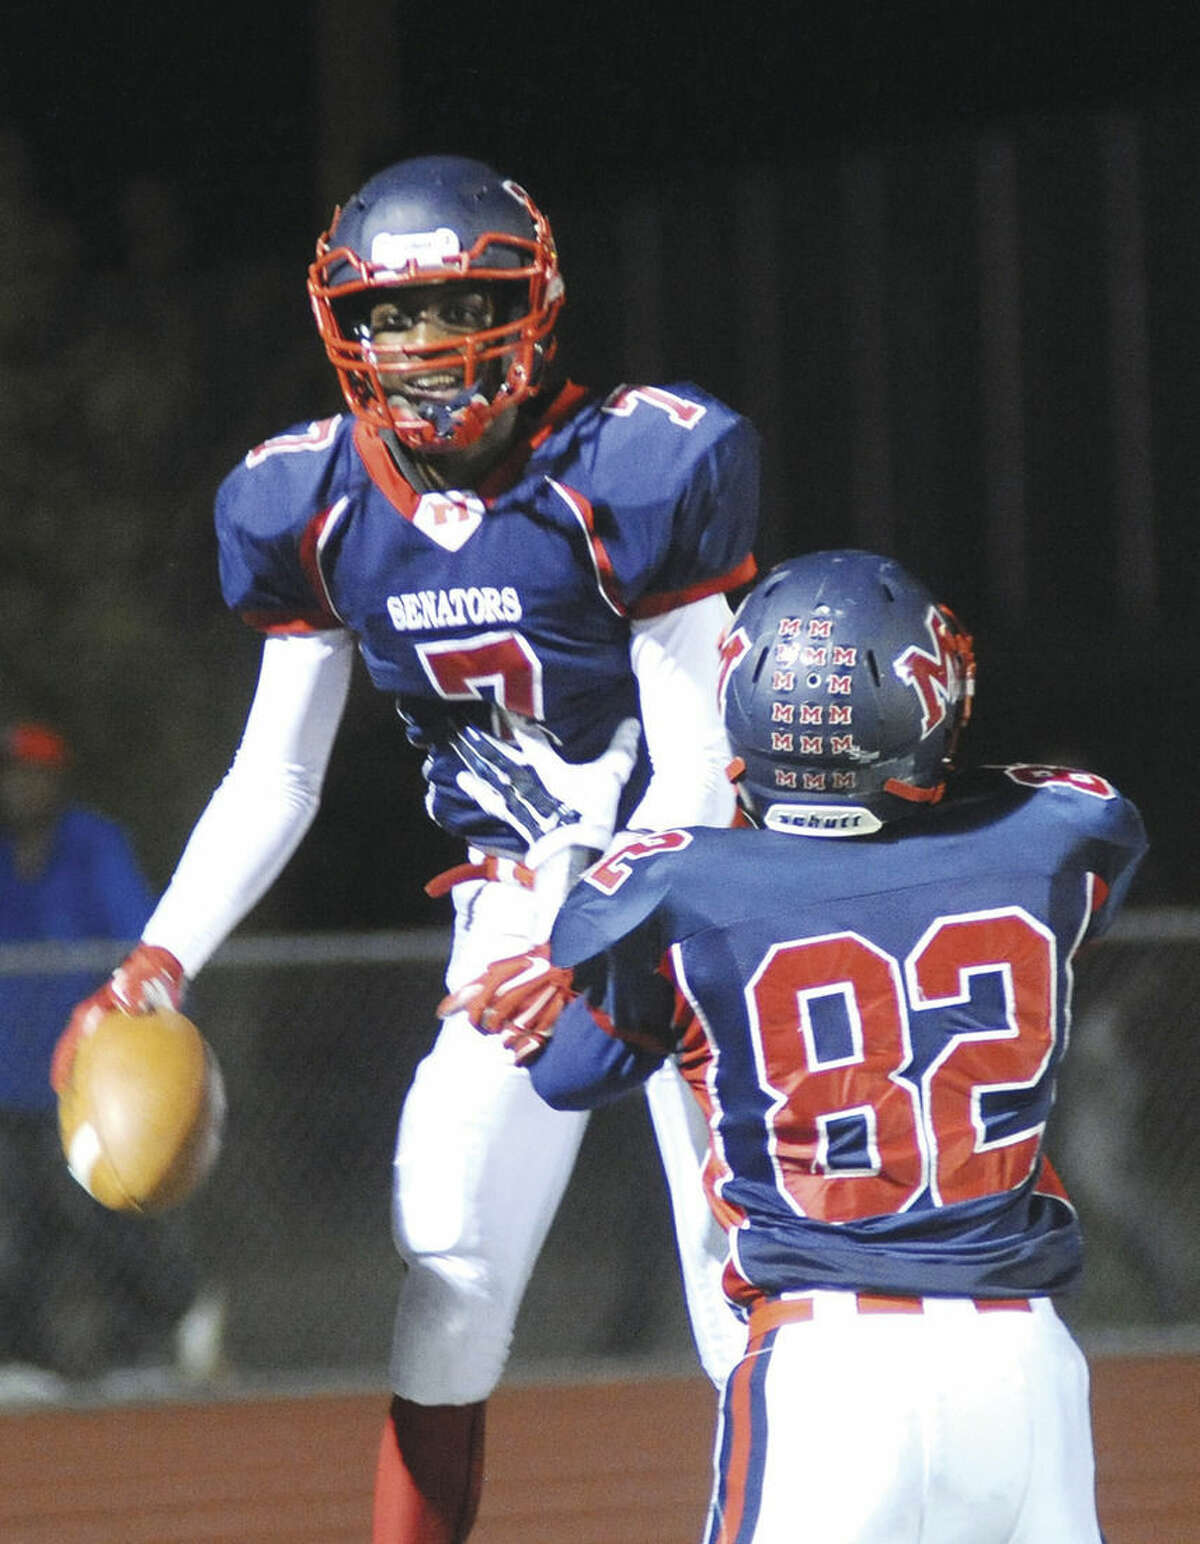 Hour photo/John Nash McMahon's Kentrell Snider (7) jumps into the arms of teammate David Daniel after catching an 18-yard touchdown pass on Friday against Harding.